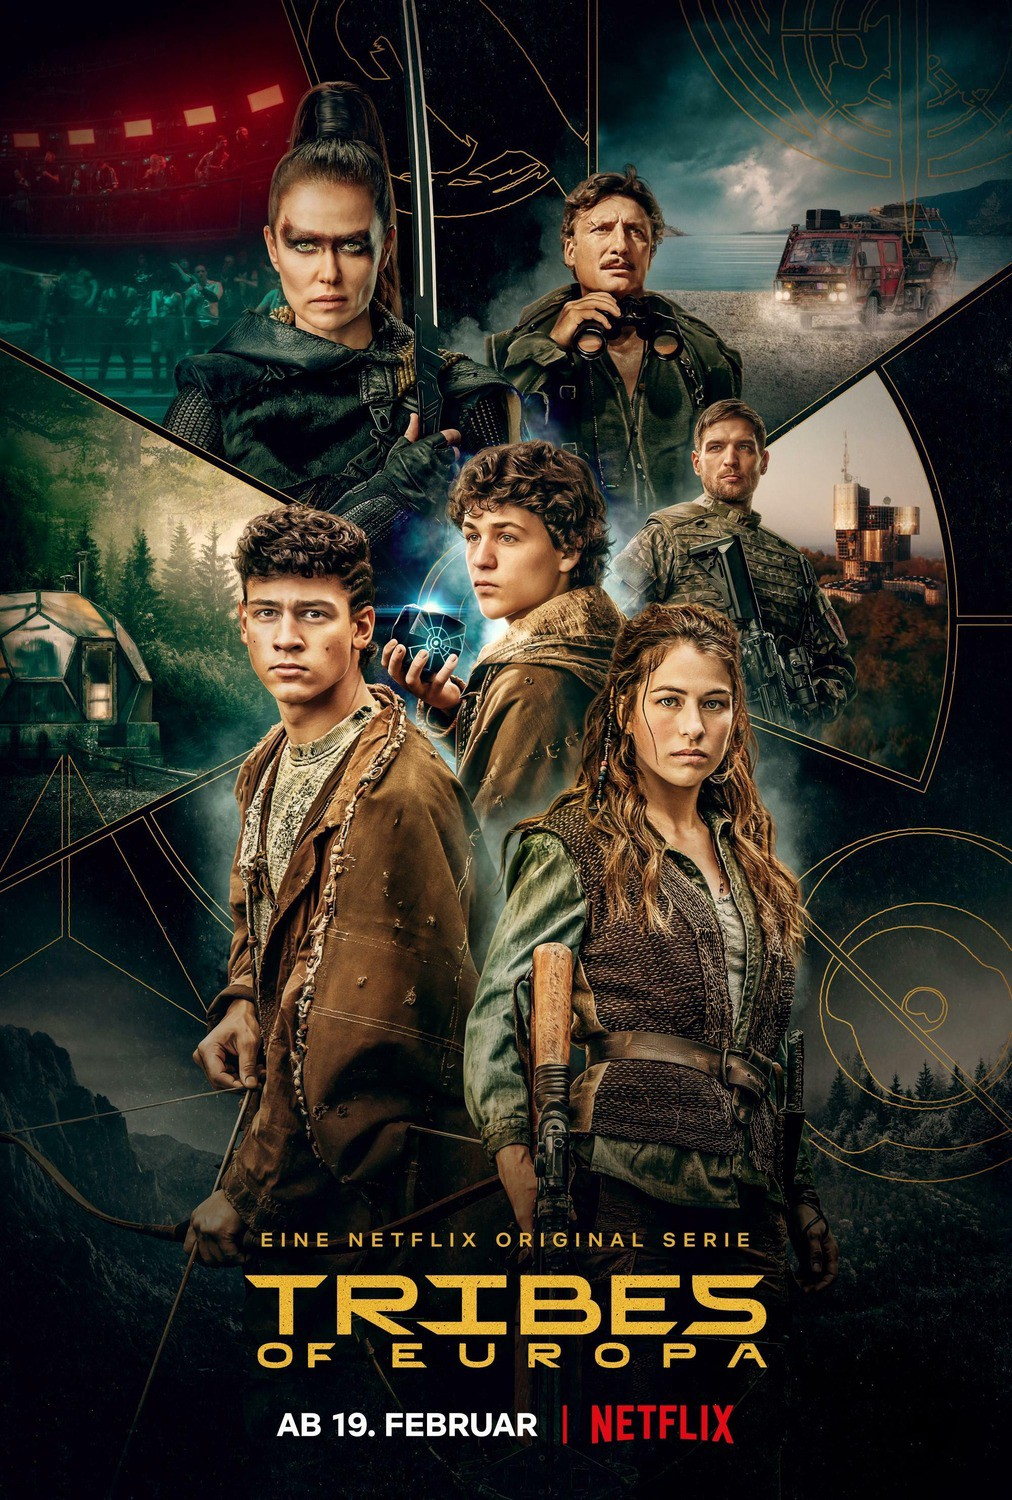 The Tribes of Europa movie poster with the main characters in front of some of the show's locations.